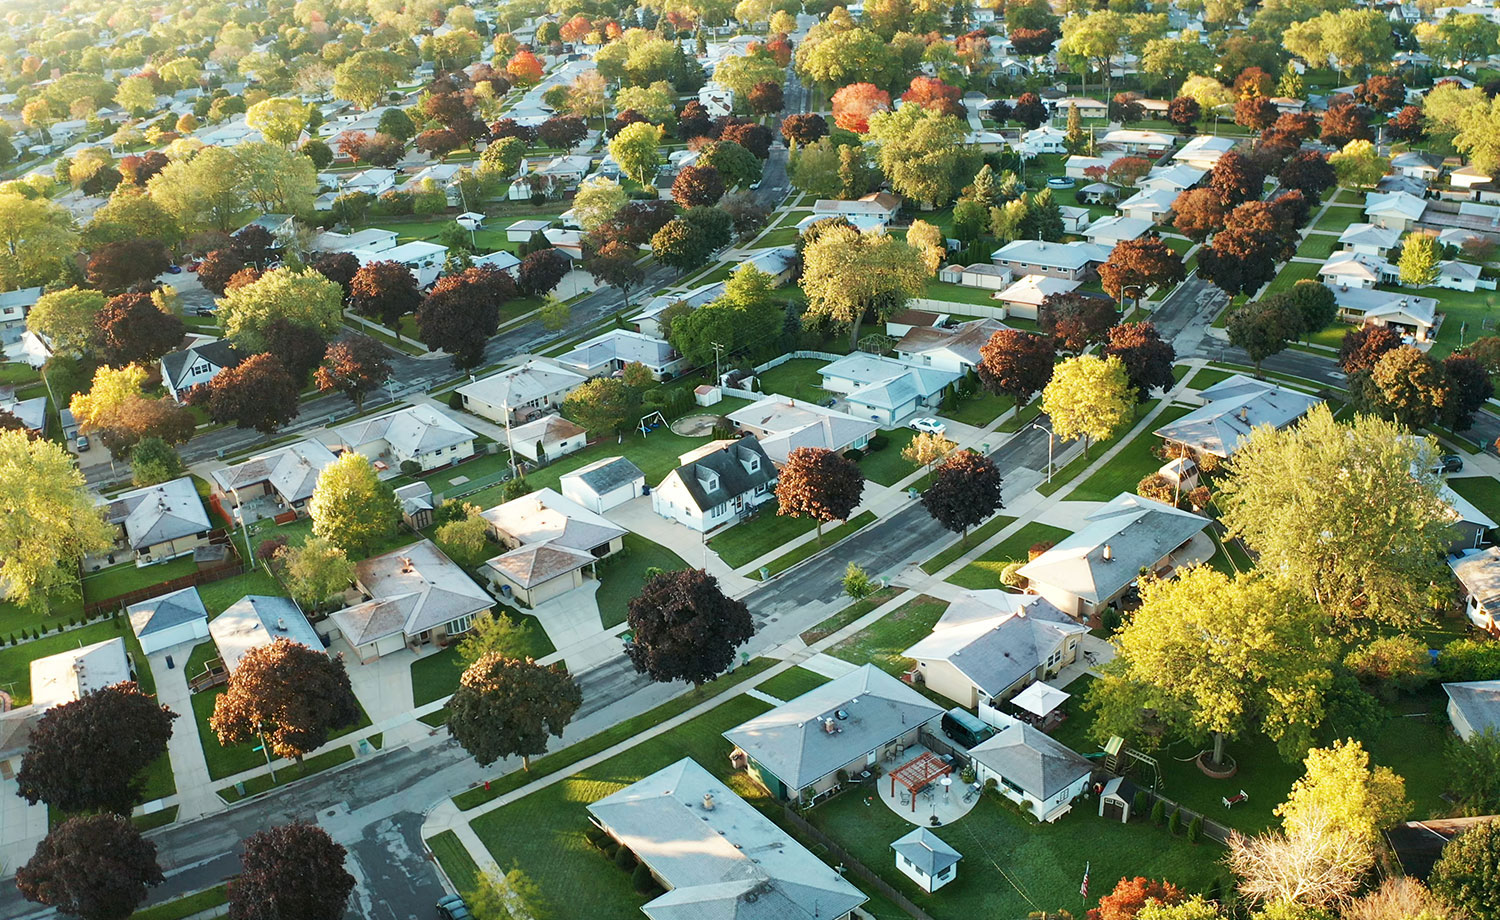 Aerial view of a neighborhood.